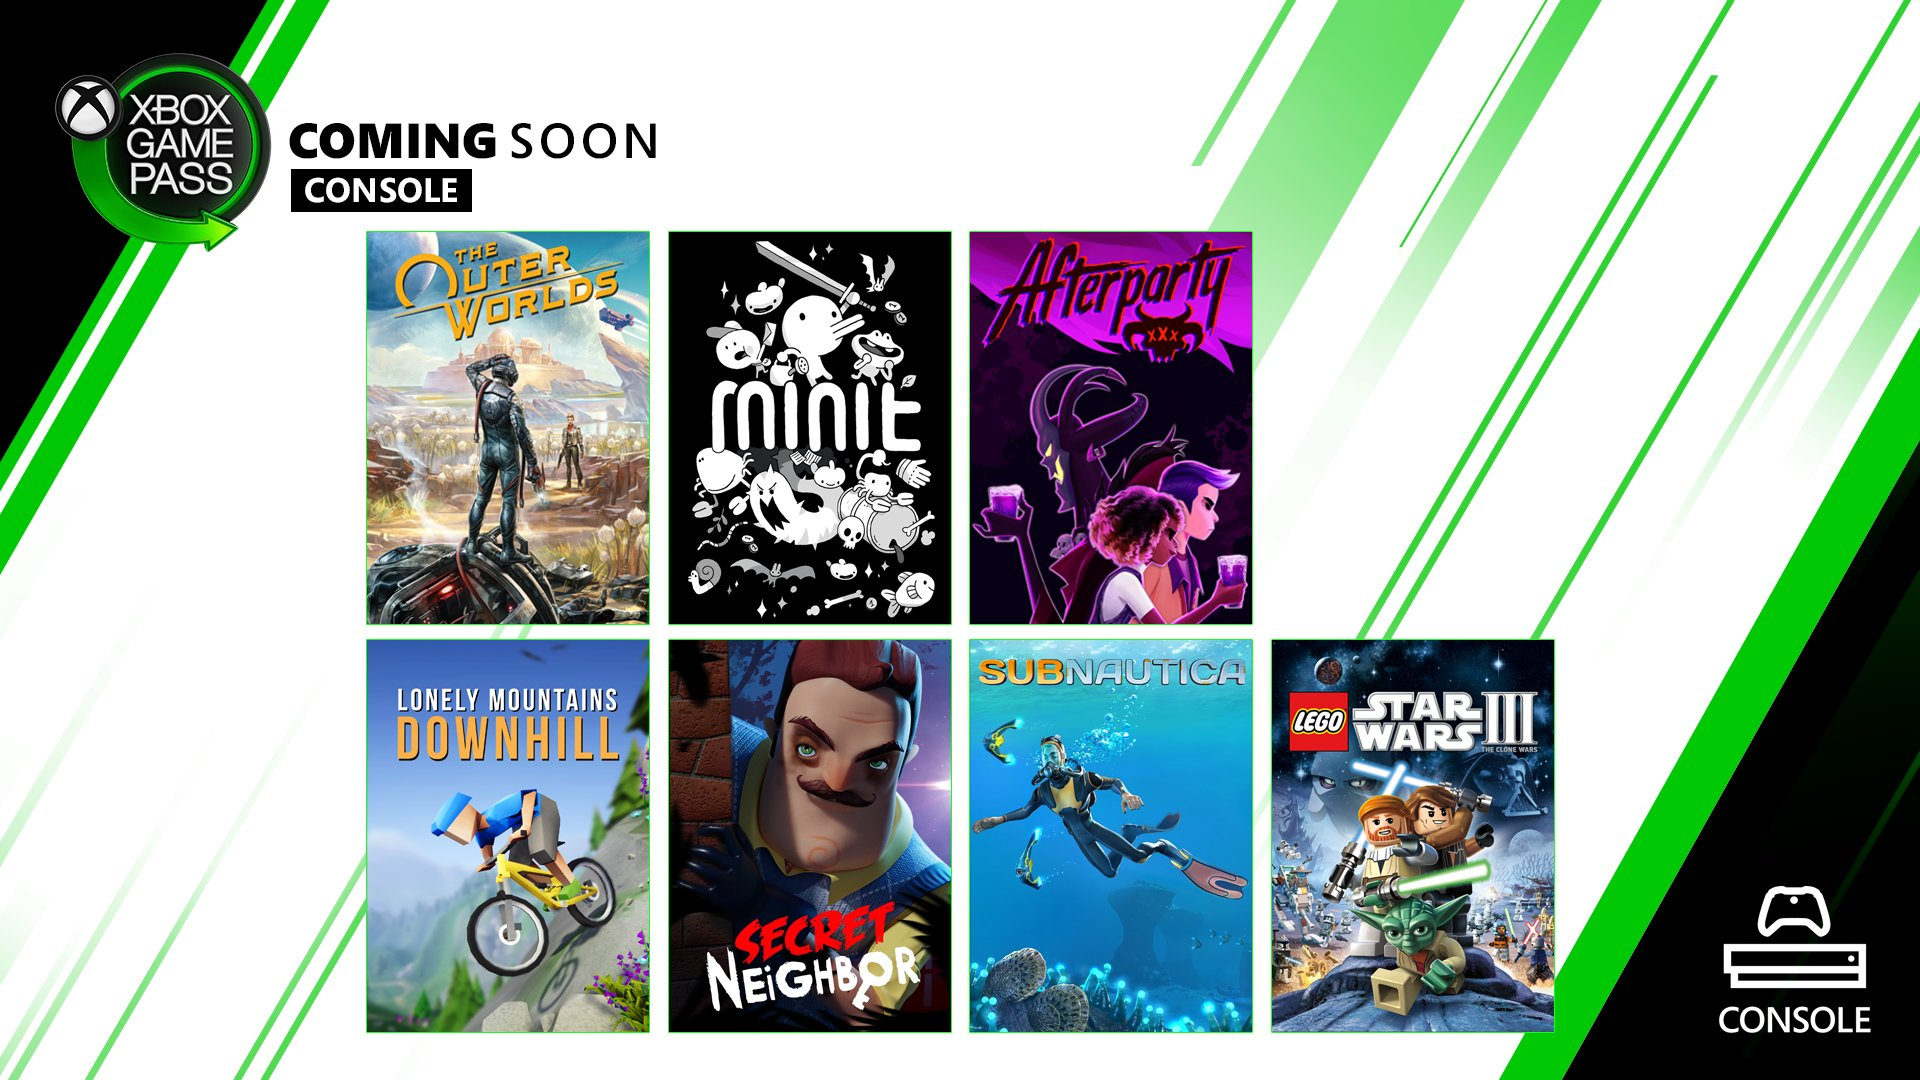 The Outer Worlds, Minit, Afterparty, Lonely Mountains Downhill, Secret Neighbor, Subnautica, and LEGO Star Wars III box art on a white background with green blades and black corners. Image reads: Xbox Game Pass Coming Soon for Console